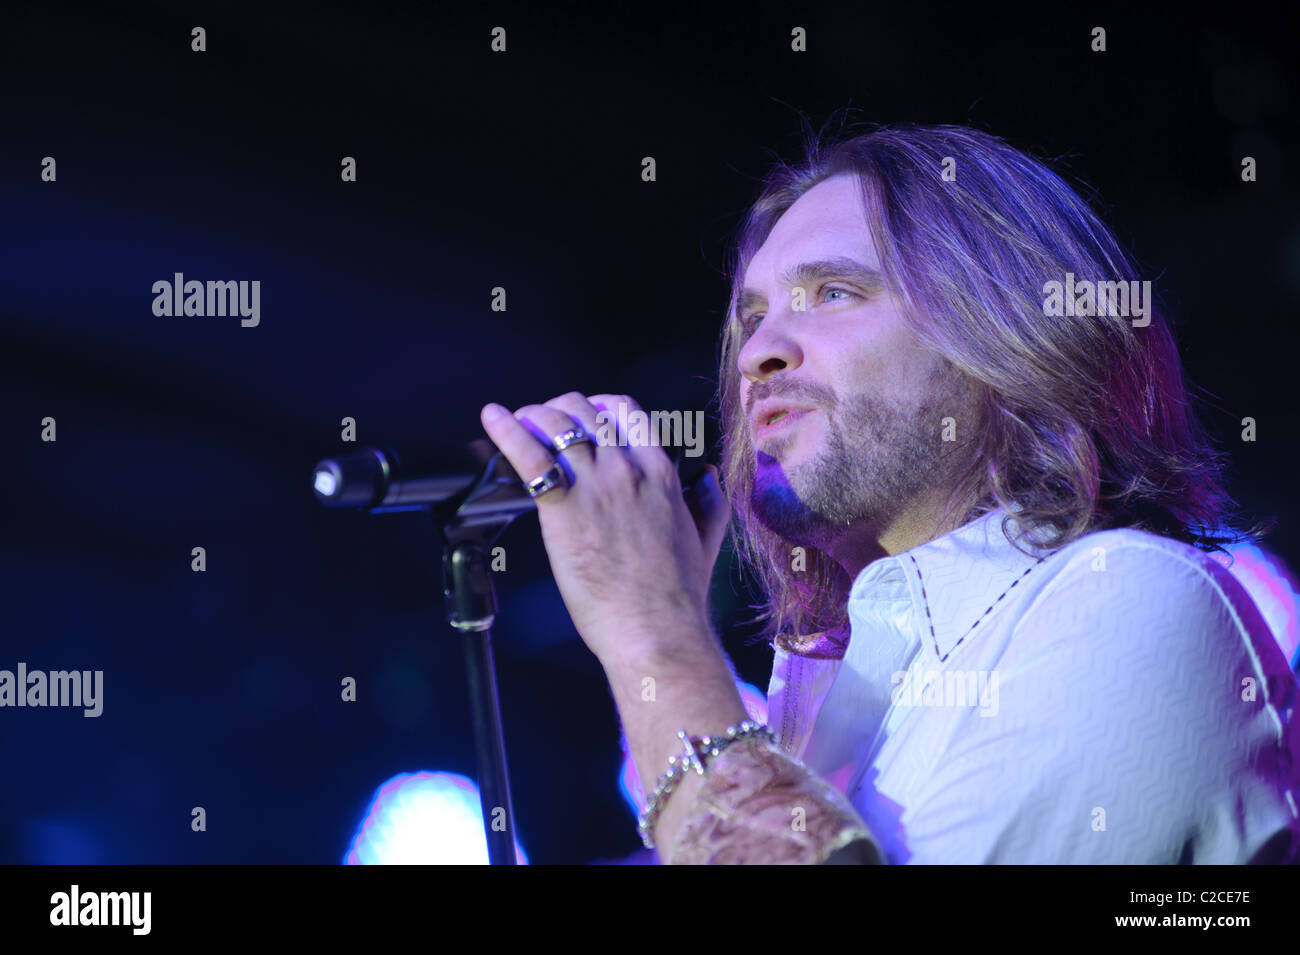 April 08, 2011, Sacramento, CA - Bo Bice performs on stage at Thunder Valley Casino in Rocklin, CA Stock Photo